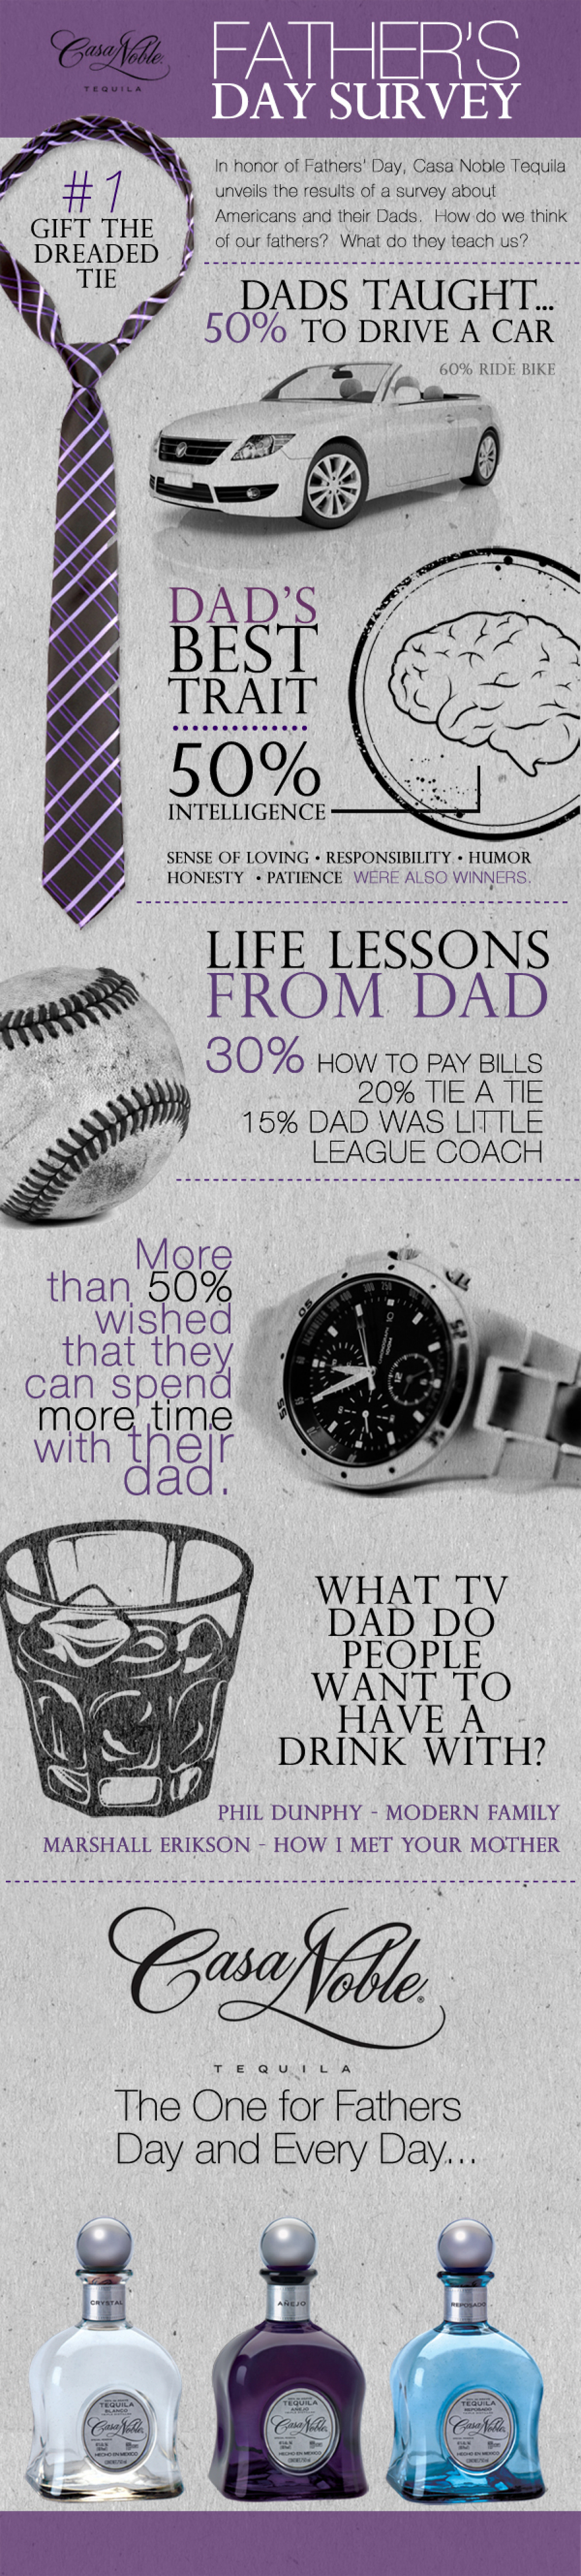 Casa Noble Father's Day Survey Infographic